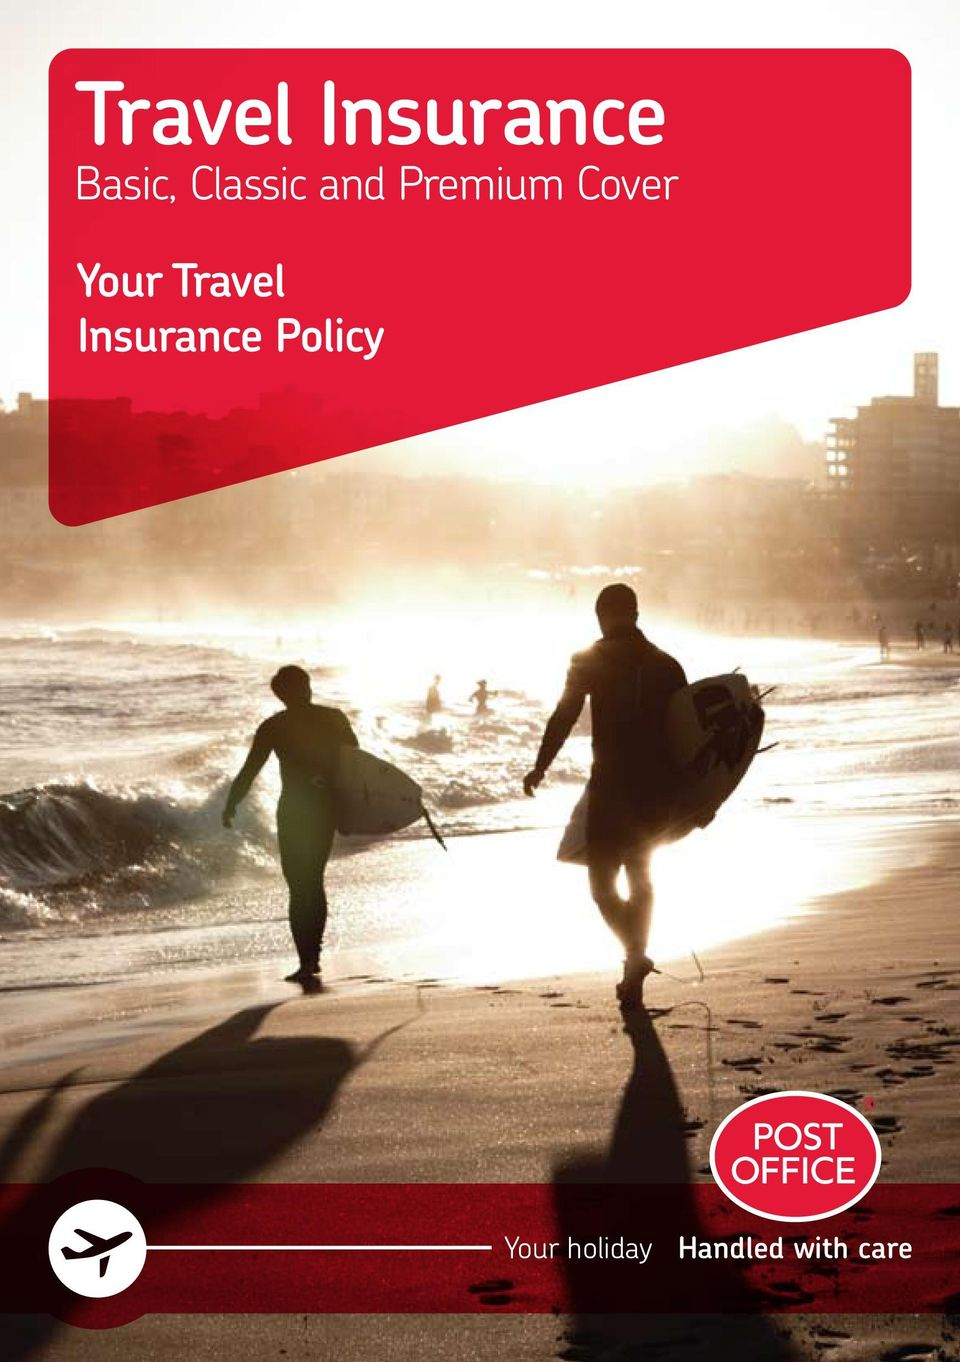 Your Travel Insurance Policy